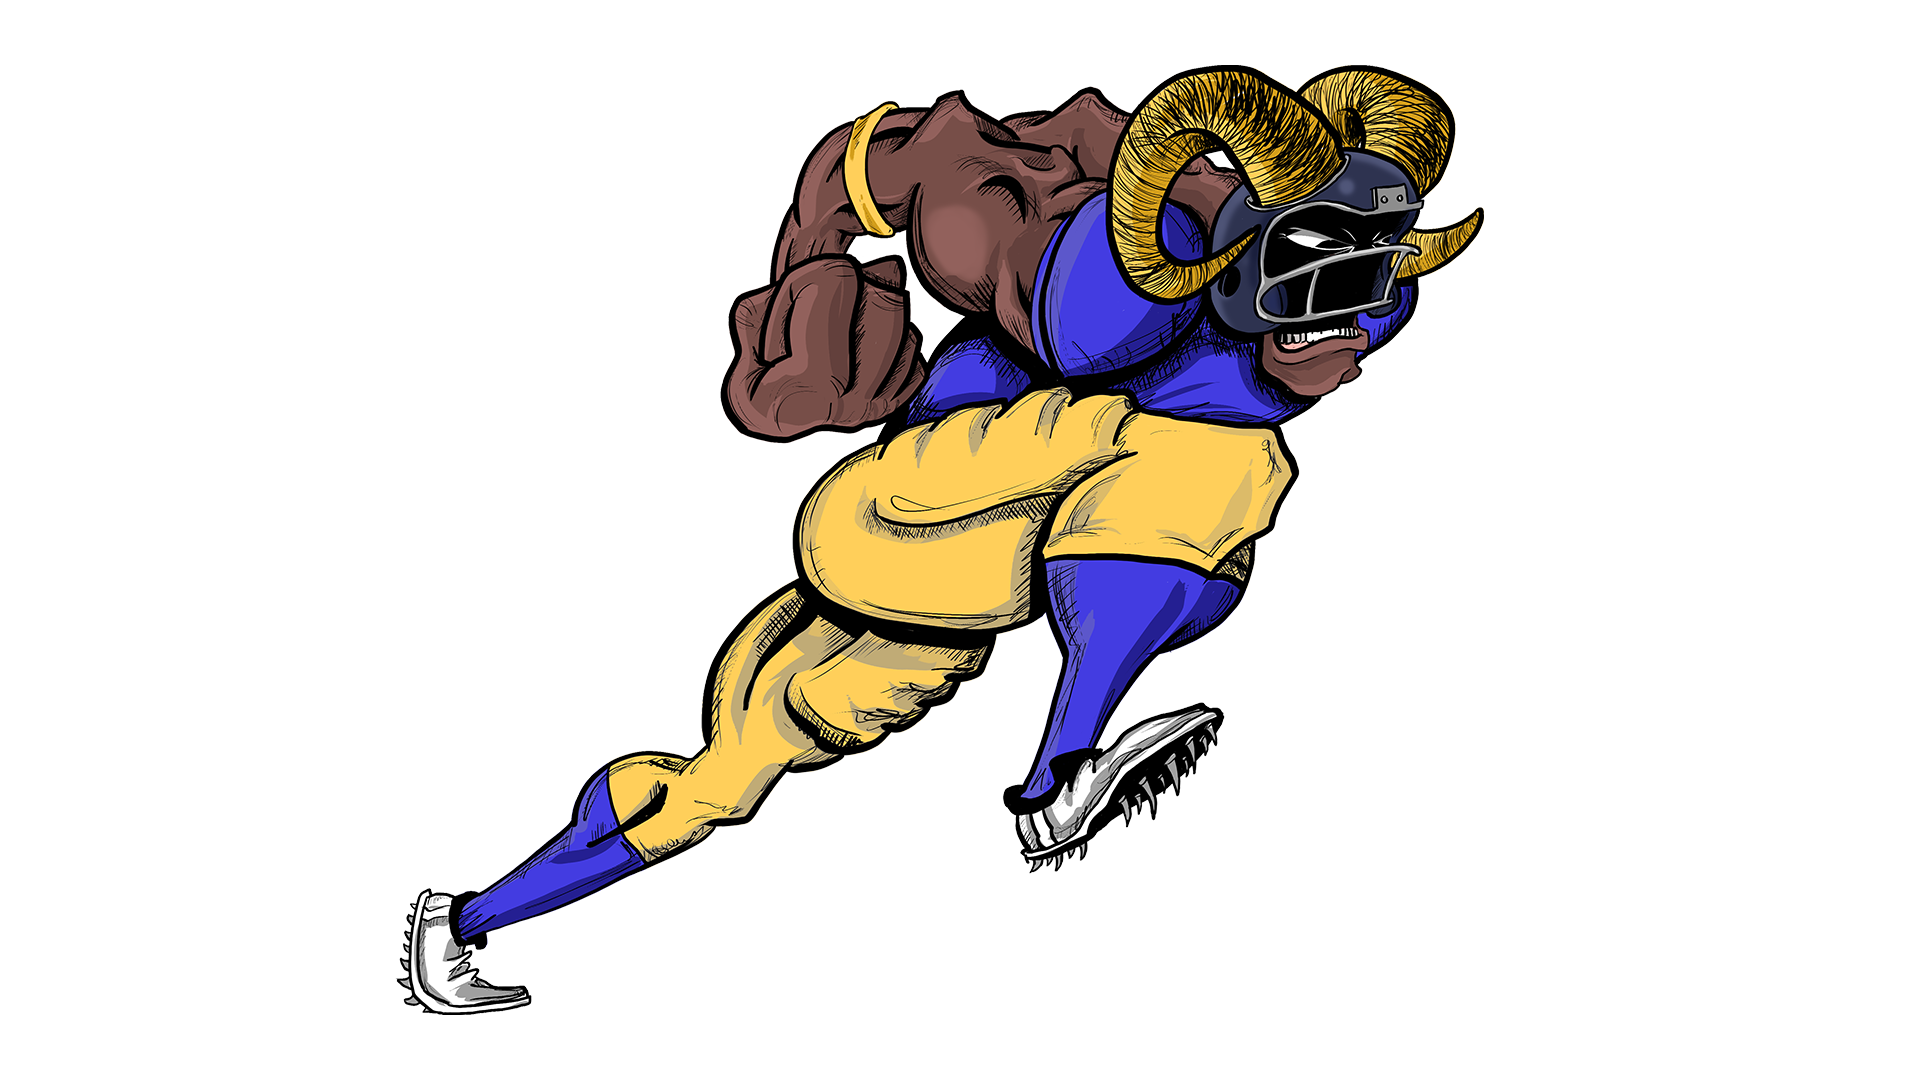 unstoppable_force_rams_1920x1080.png